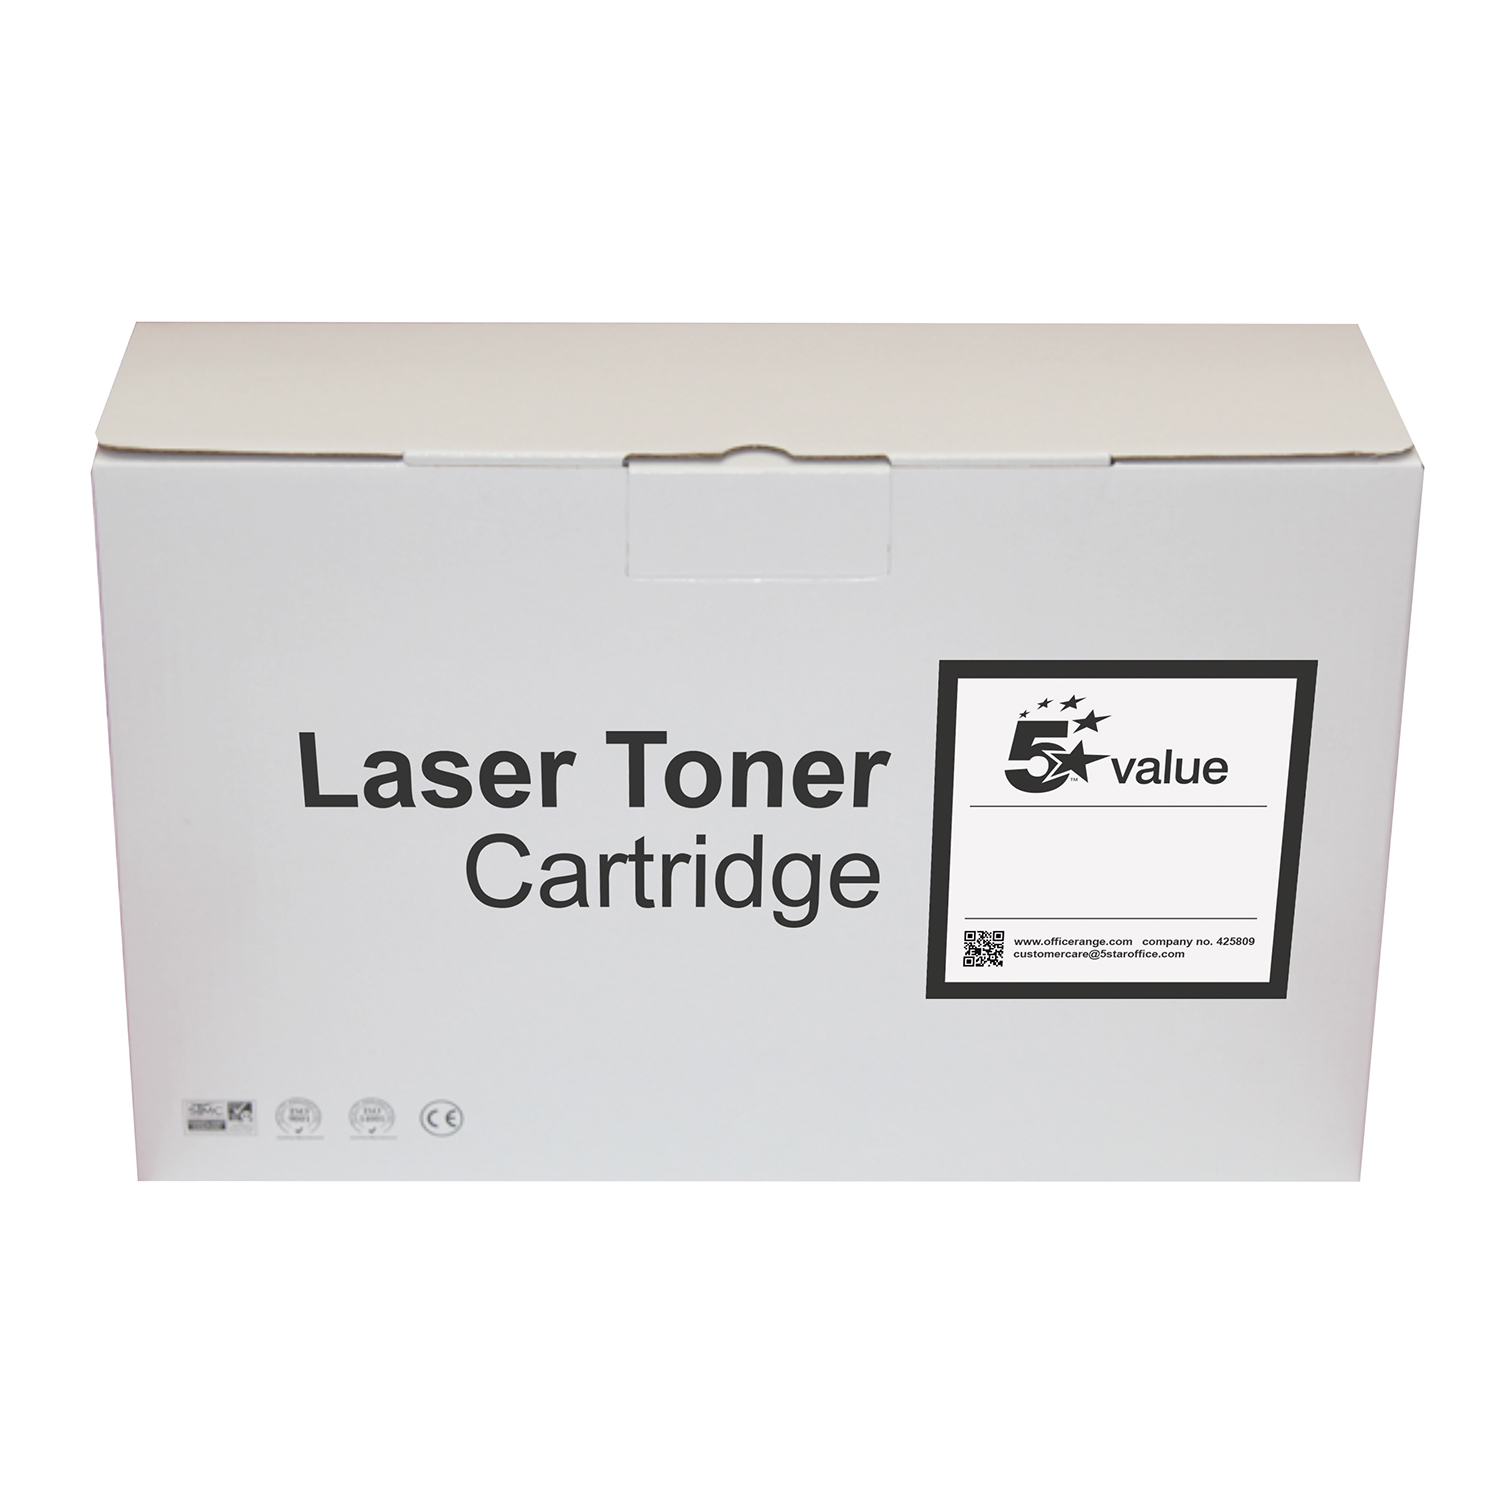 5 Star Value Remanufactured Laser Toner Cartridge Page Life 2200pp Yellow [Brother TN241Y Alternative]